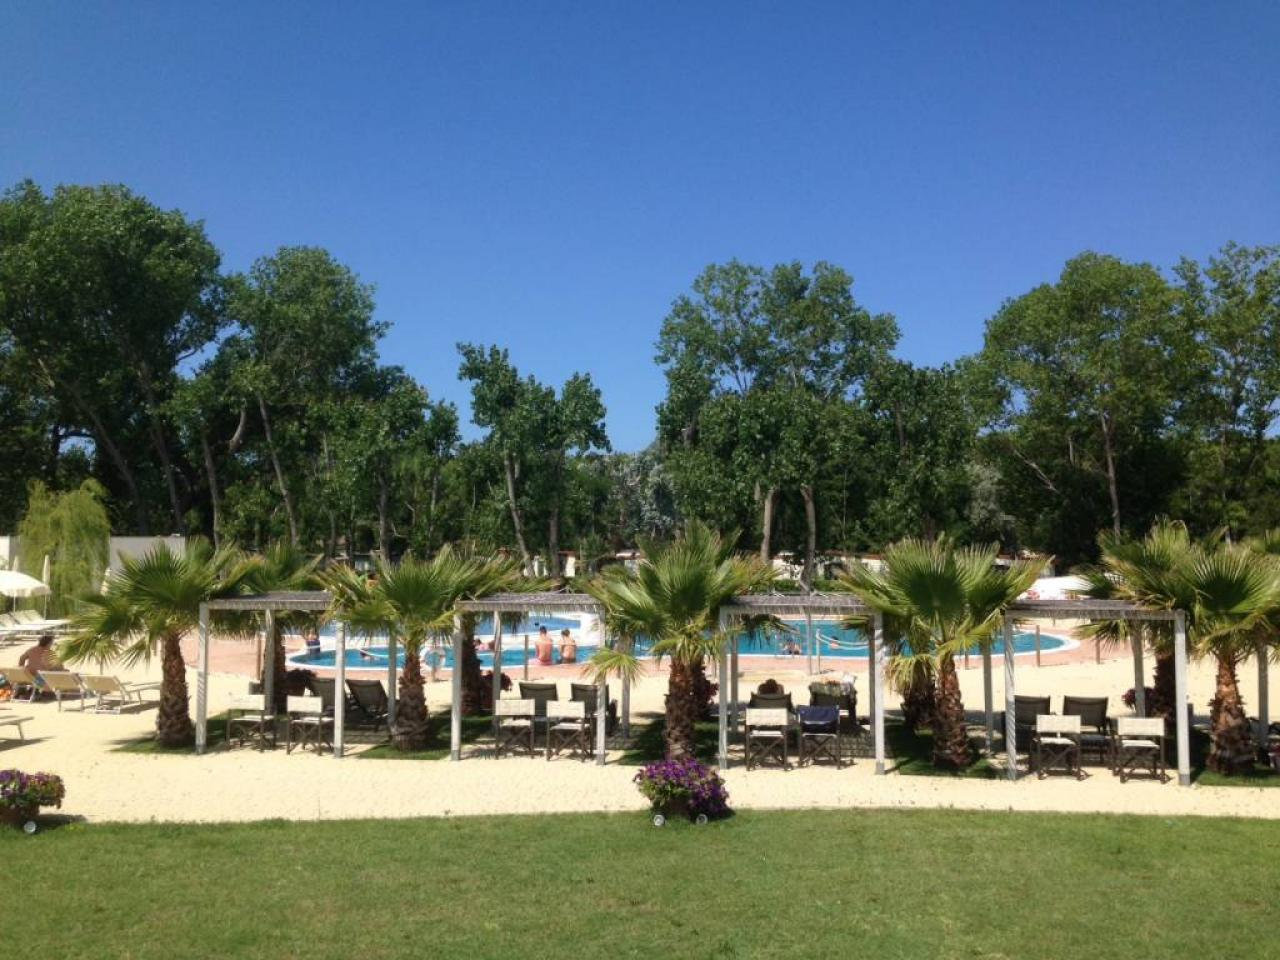 Campsite with Pool in Tuscany